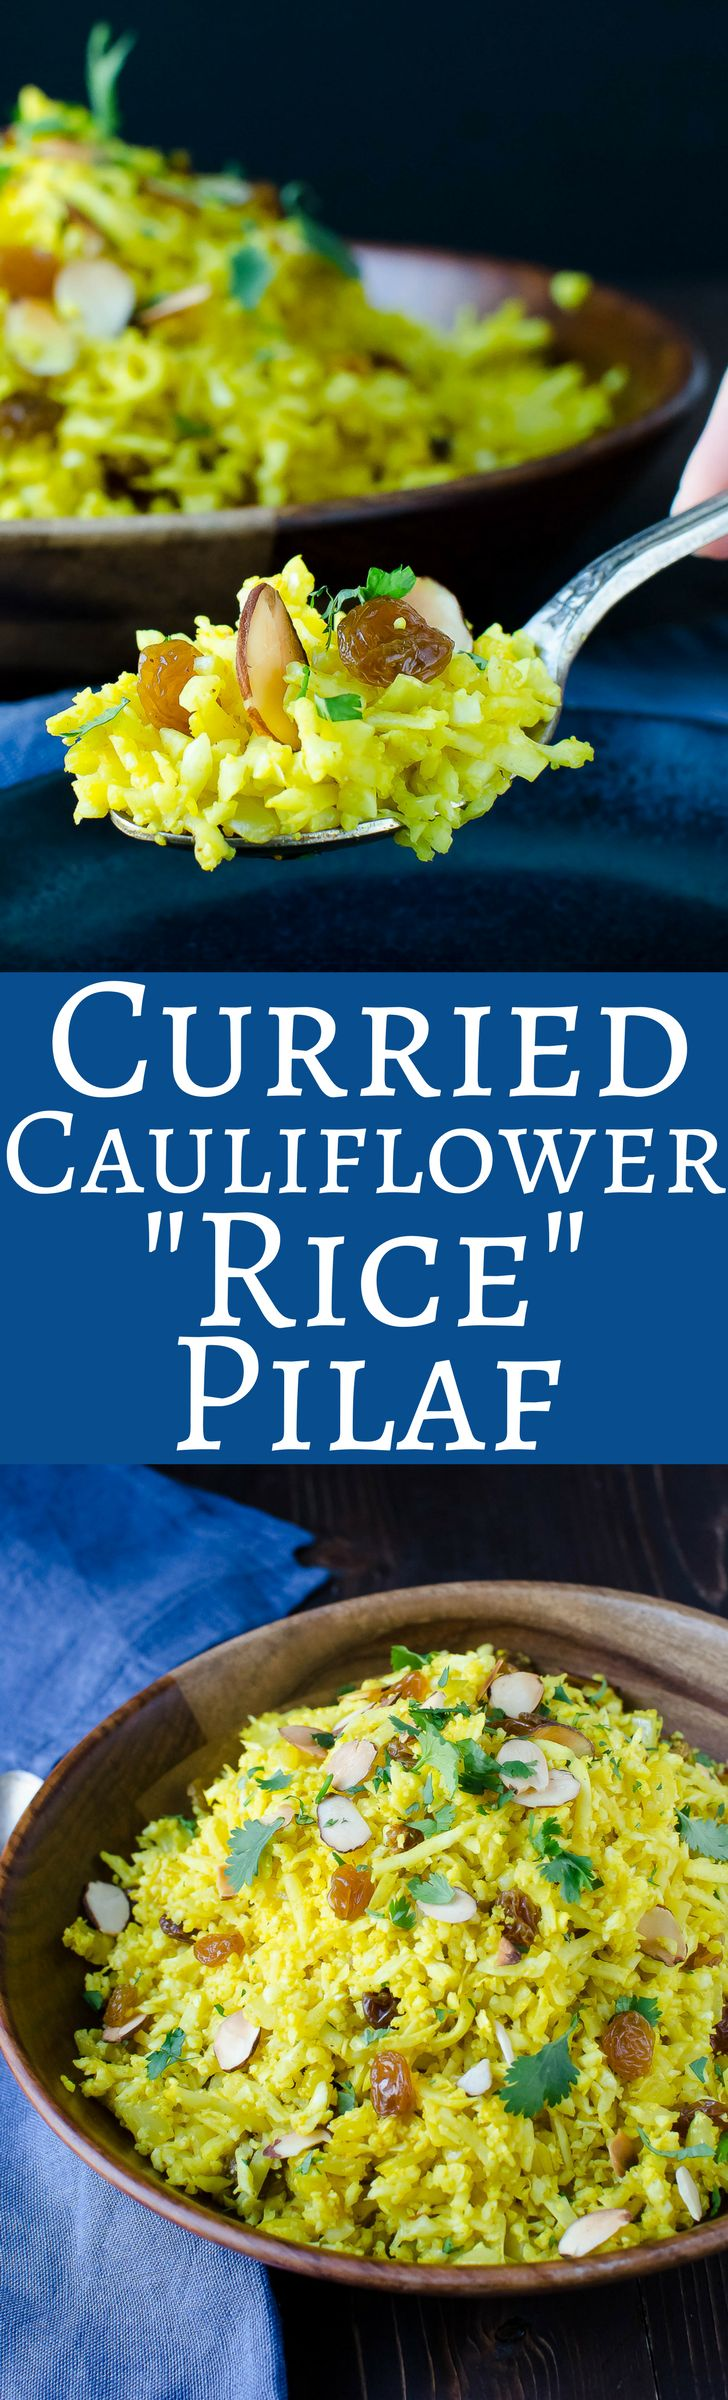 "Curried Cauliflower ""Rice"" Pilaf is an easy, delicious, healthy side dish! Make it easier with Trader Joe's cauliflower rice. Paleo & Vegan too!"